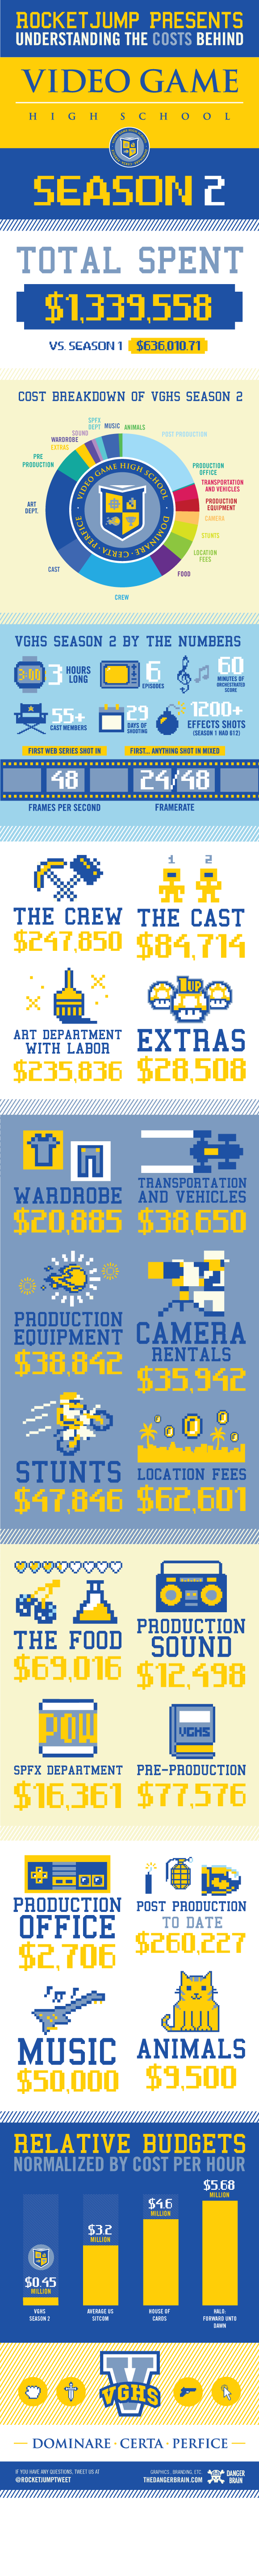 VGHS_S2_Infographic-1